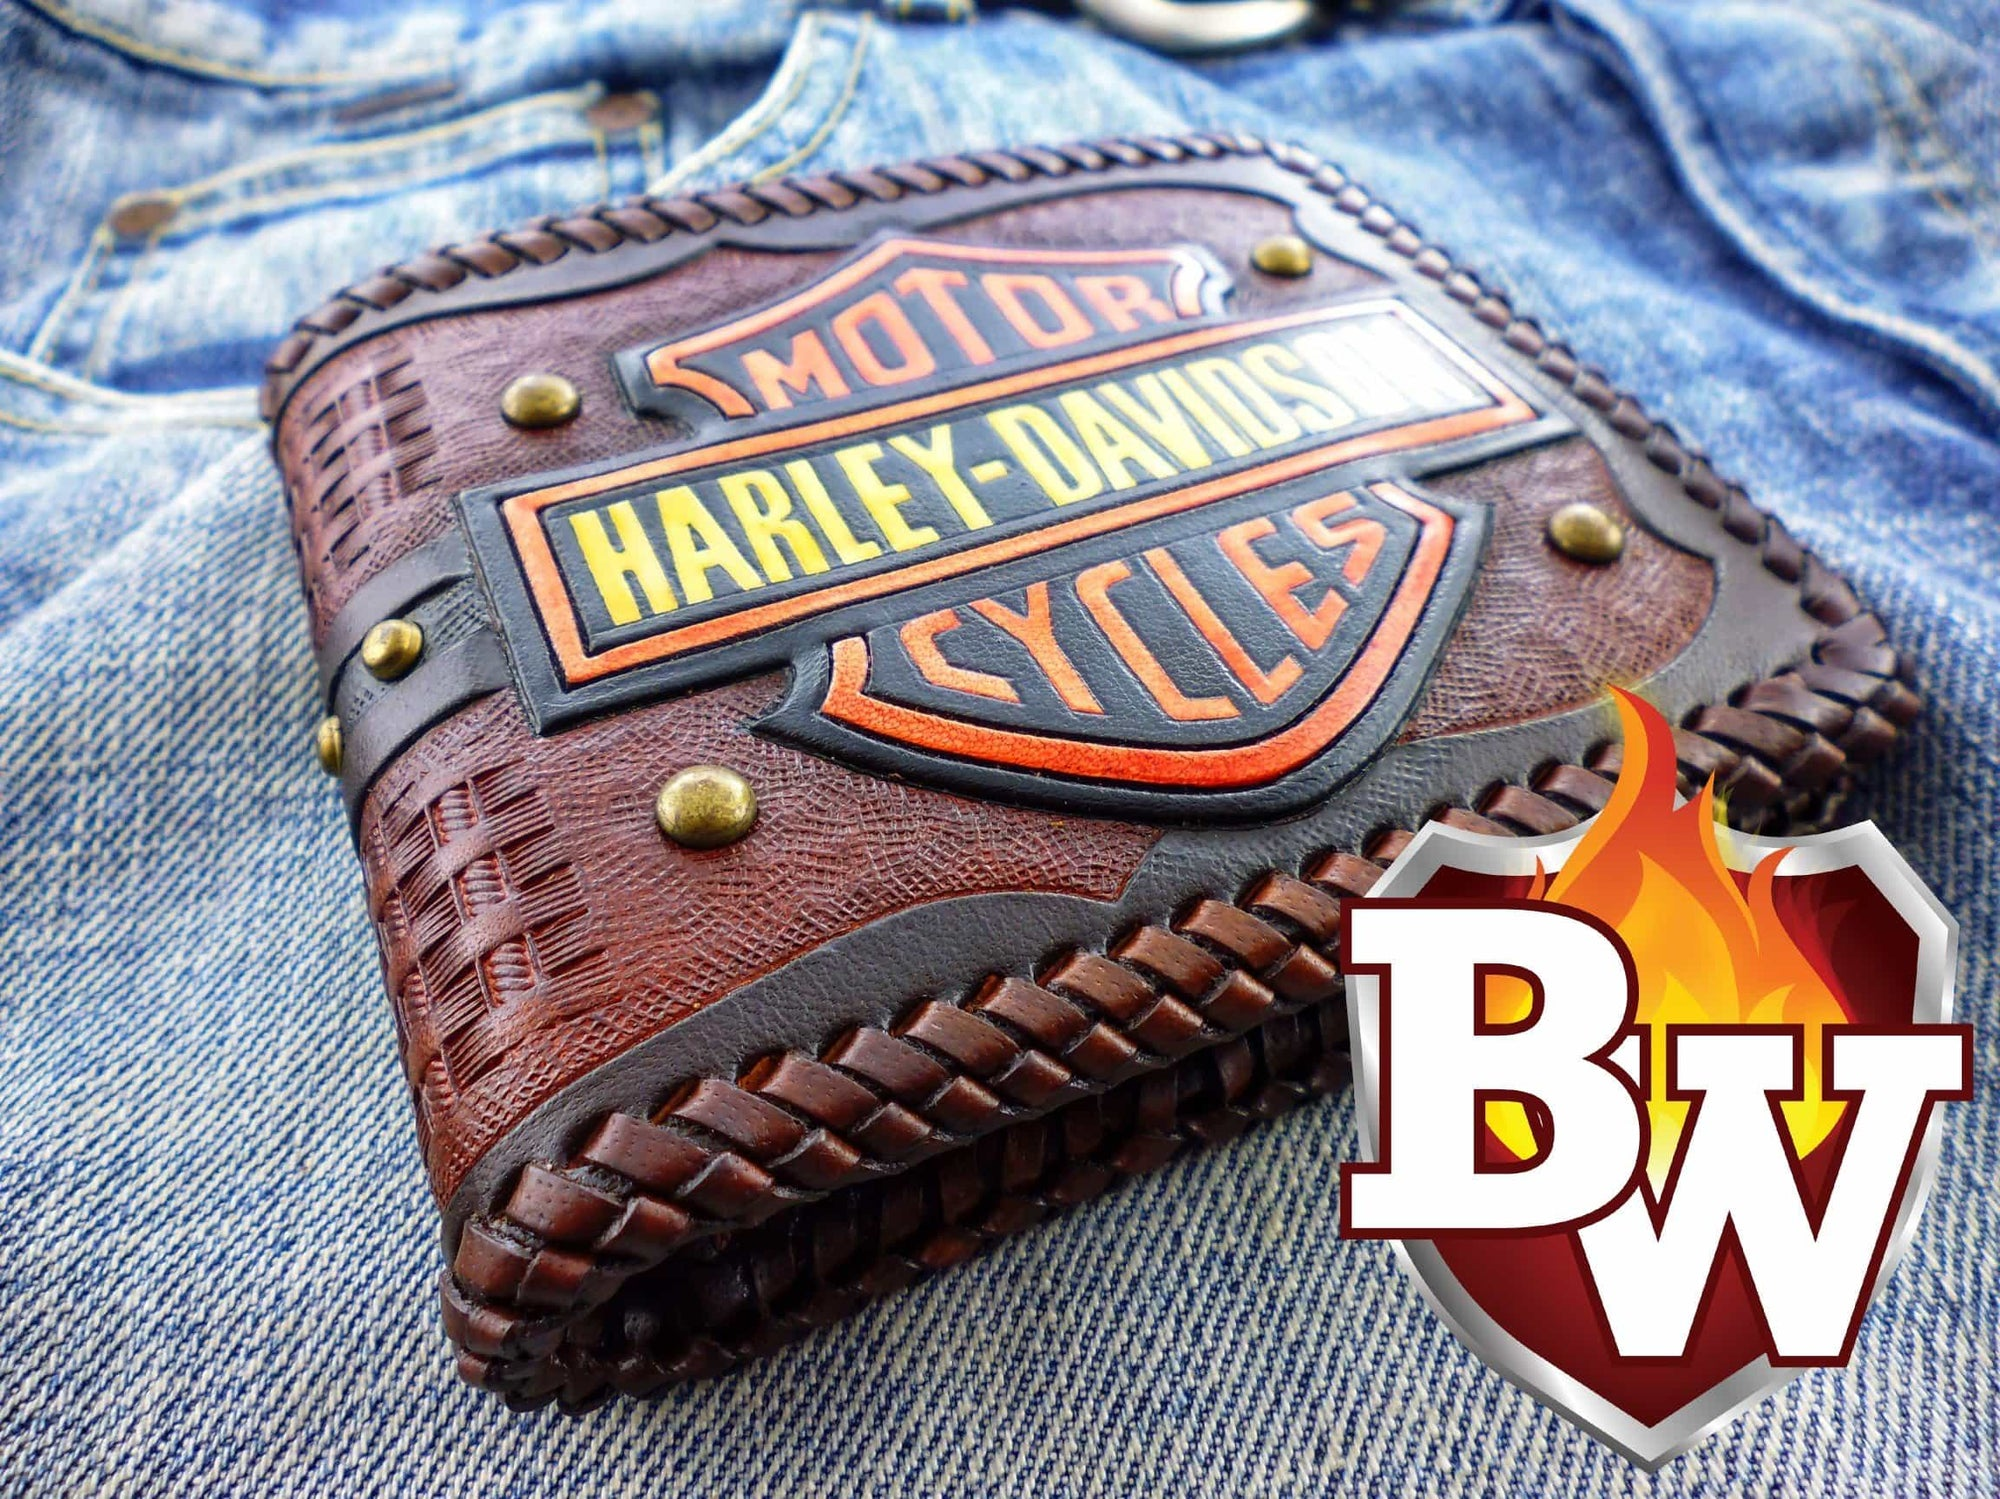 Harley Davidson 5 Custom Handmade Hand Tooled Leather Biker Wallet - Handcrafted Quality Genine Leather Backed by a 5-Year Warranty - Biker-Wallets.com